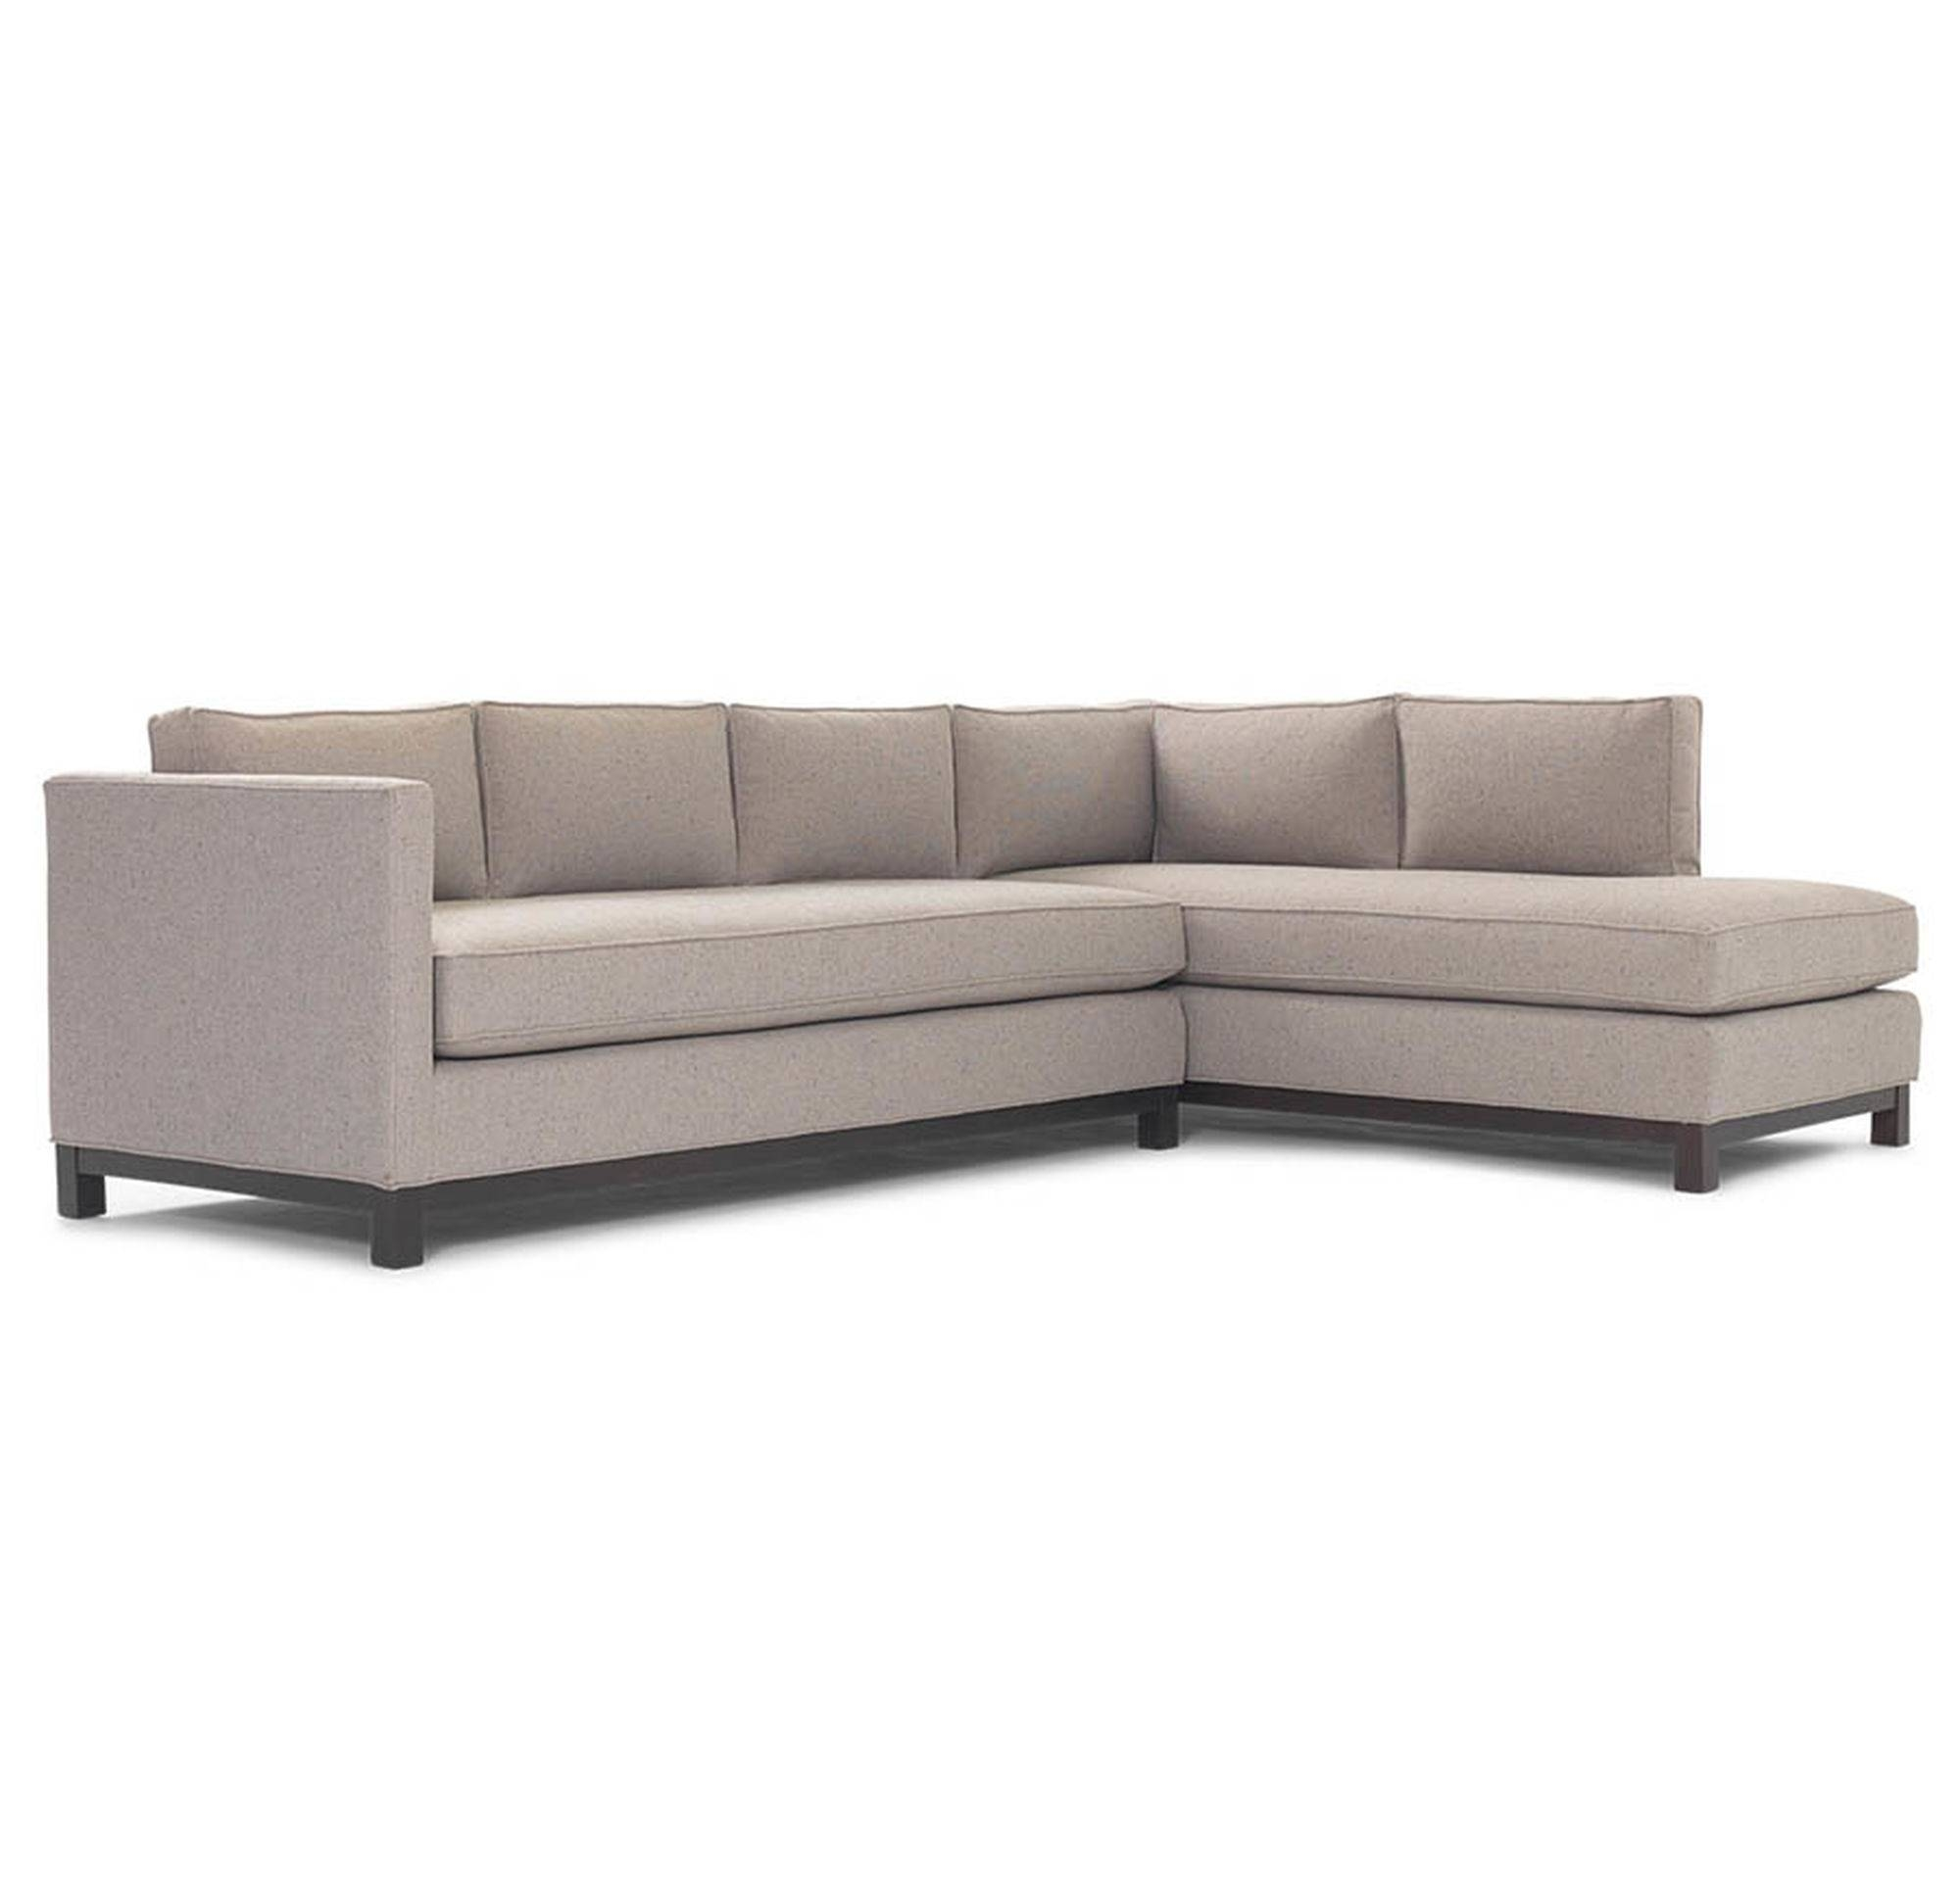 Mitchell Gold Clifton Sectional Sofa - Cleanupflorida regarding Mitchell Gold Clifton Sectional Sofas (Image 9 of 15)